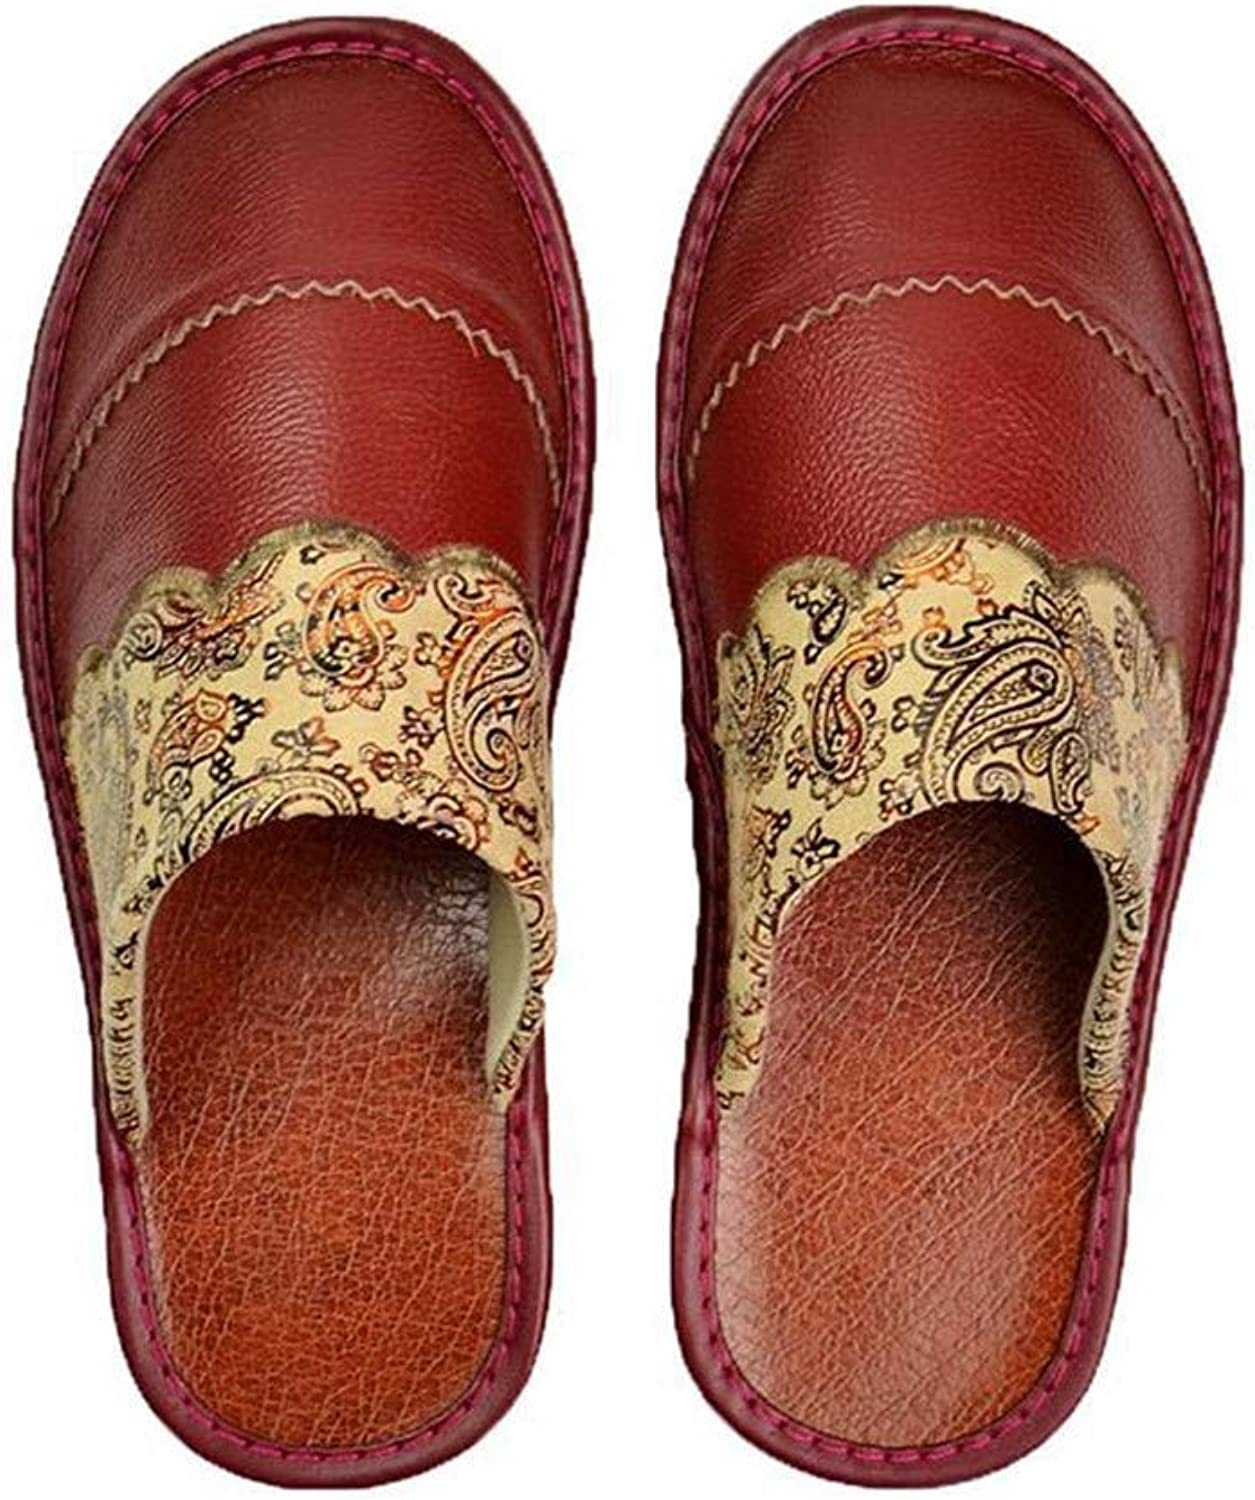 Leather Slippers Baotou Spring and Autumn Leather Home Slippers Floor Men and Women Home Indoor Sandals and Slippers,Maroon,37 38